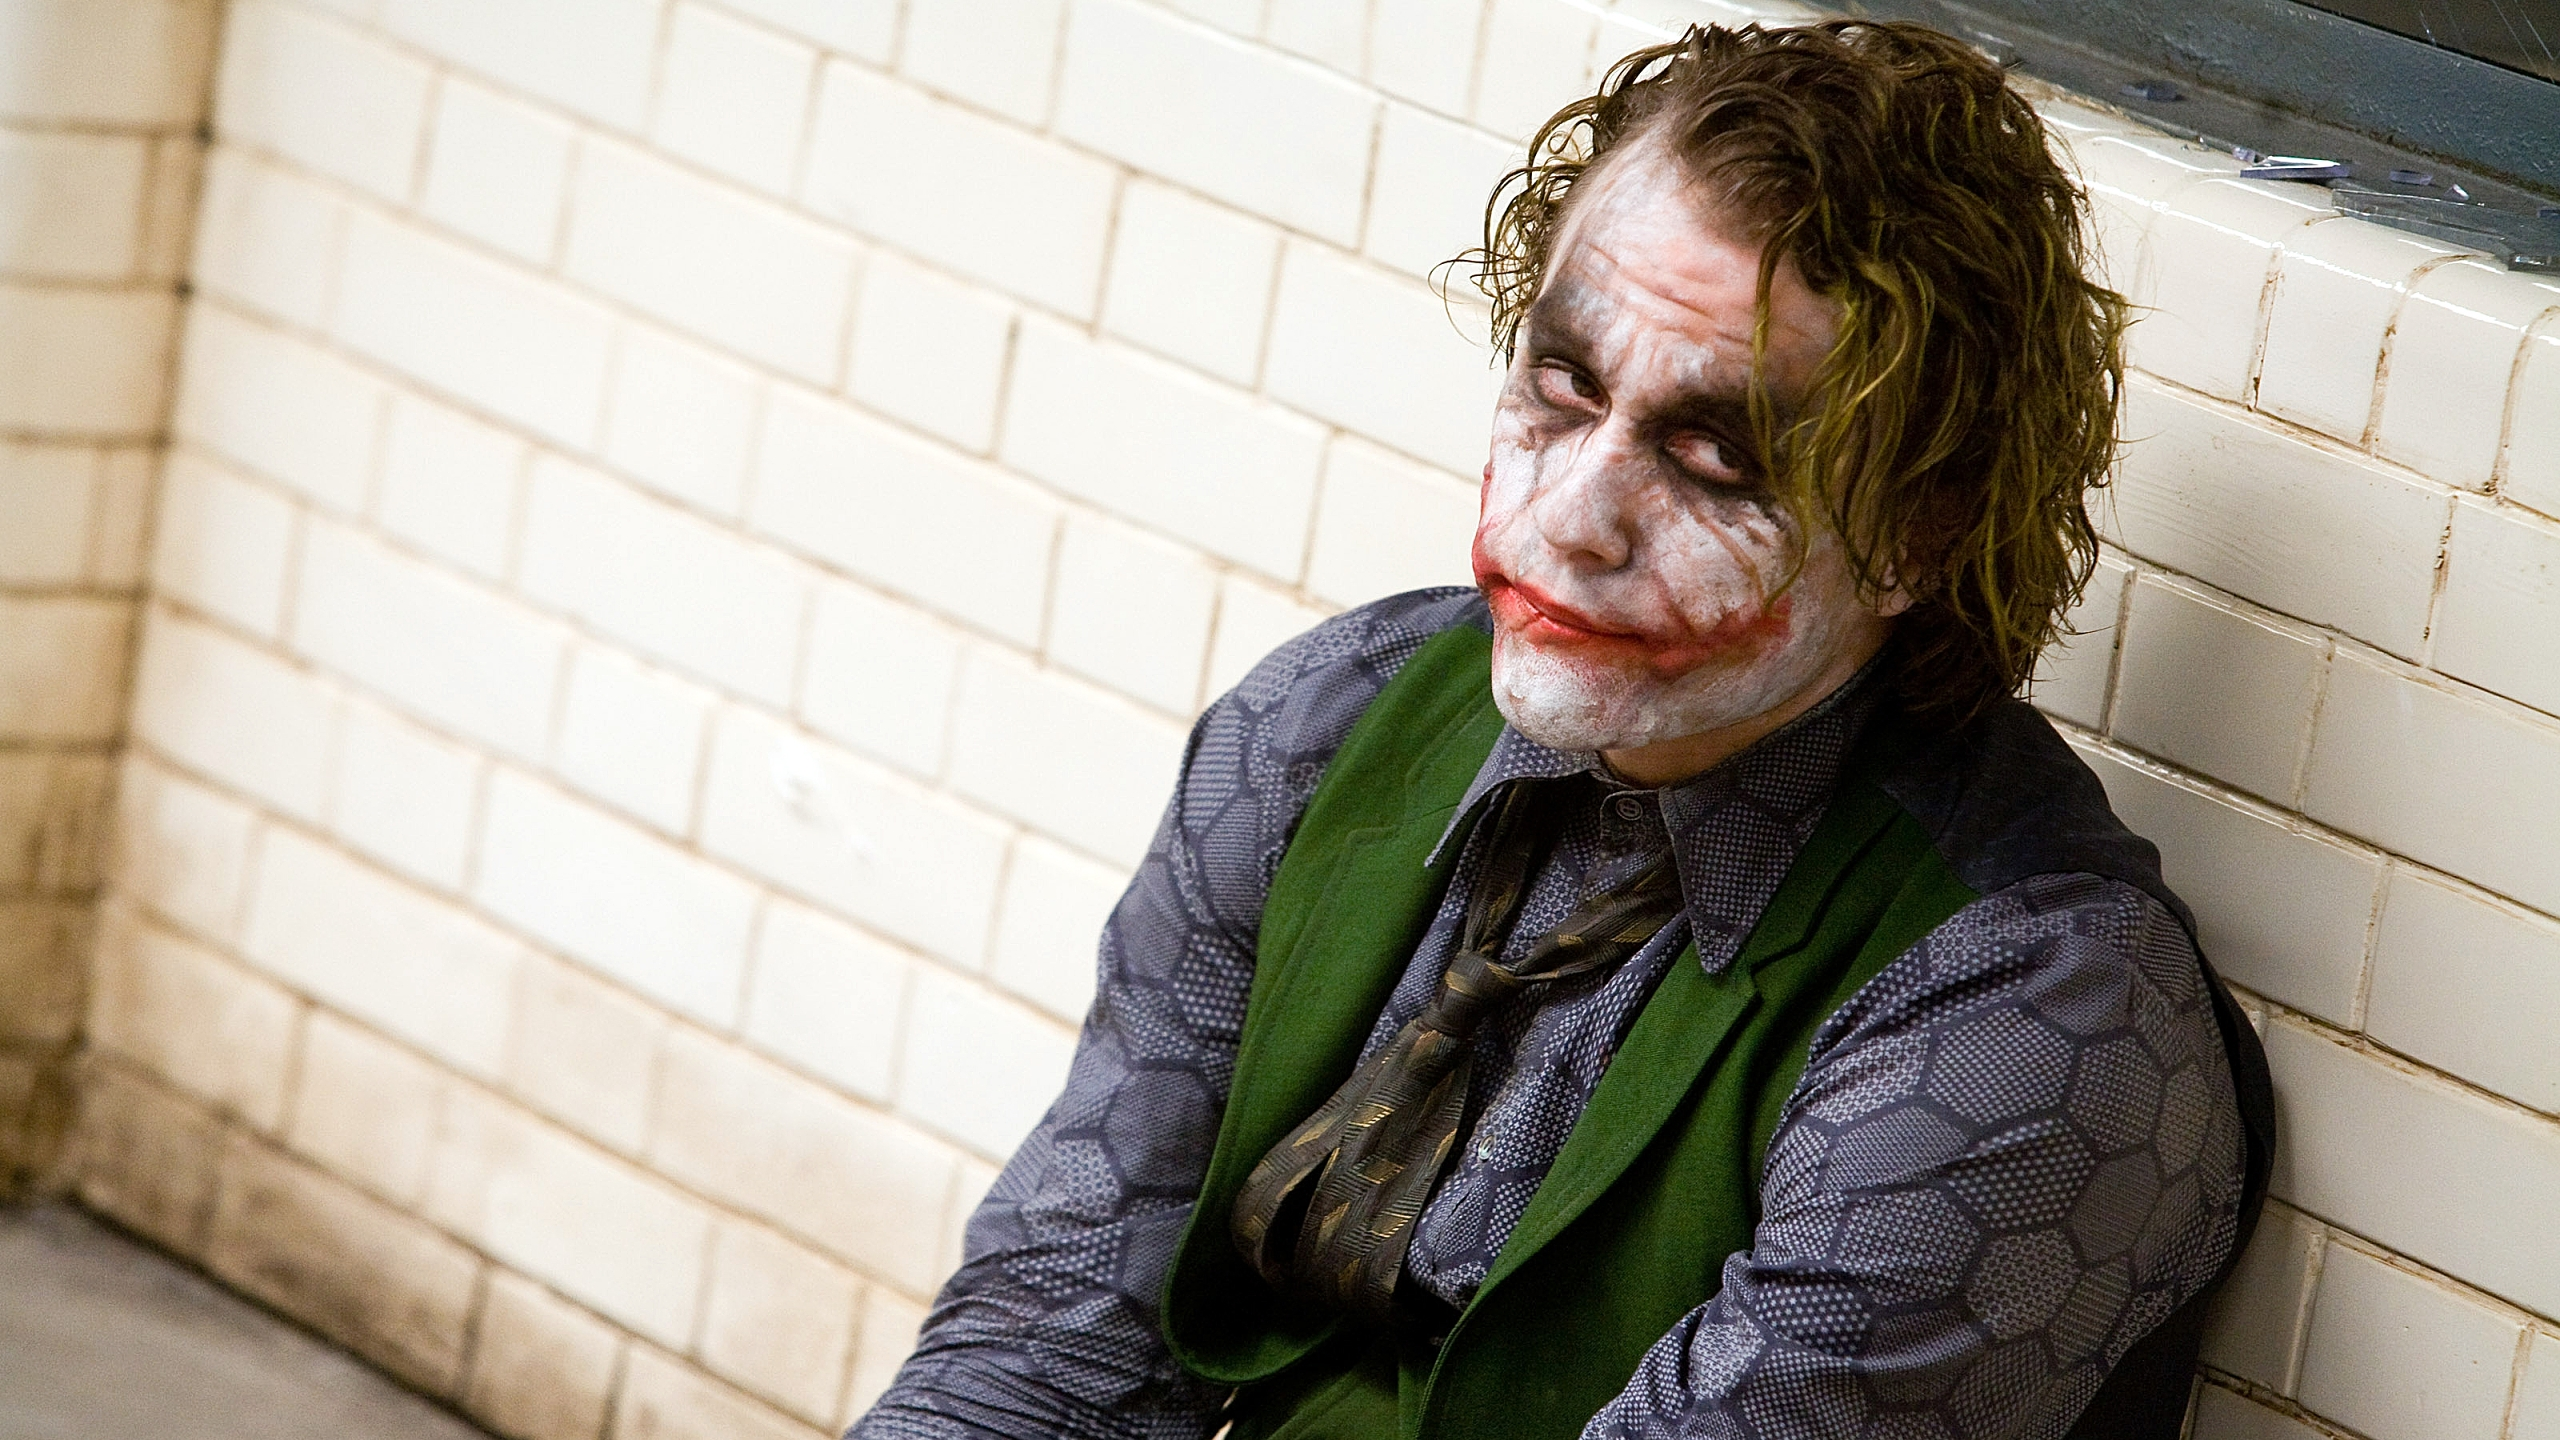 https://hdwallsource.com/img/2016/8/heath-ledger-joker-wallpaper-background-52841-54559-hd-wallpapers.jpg